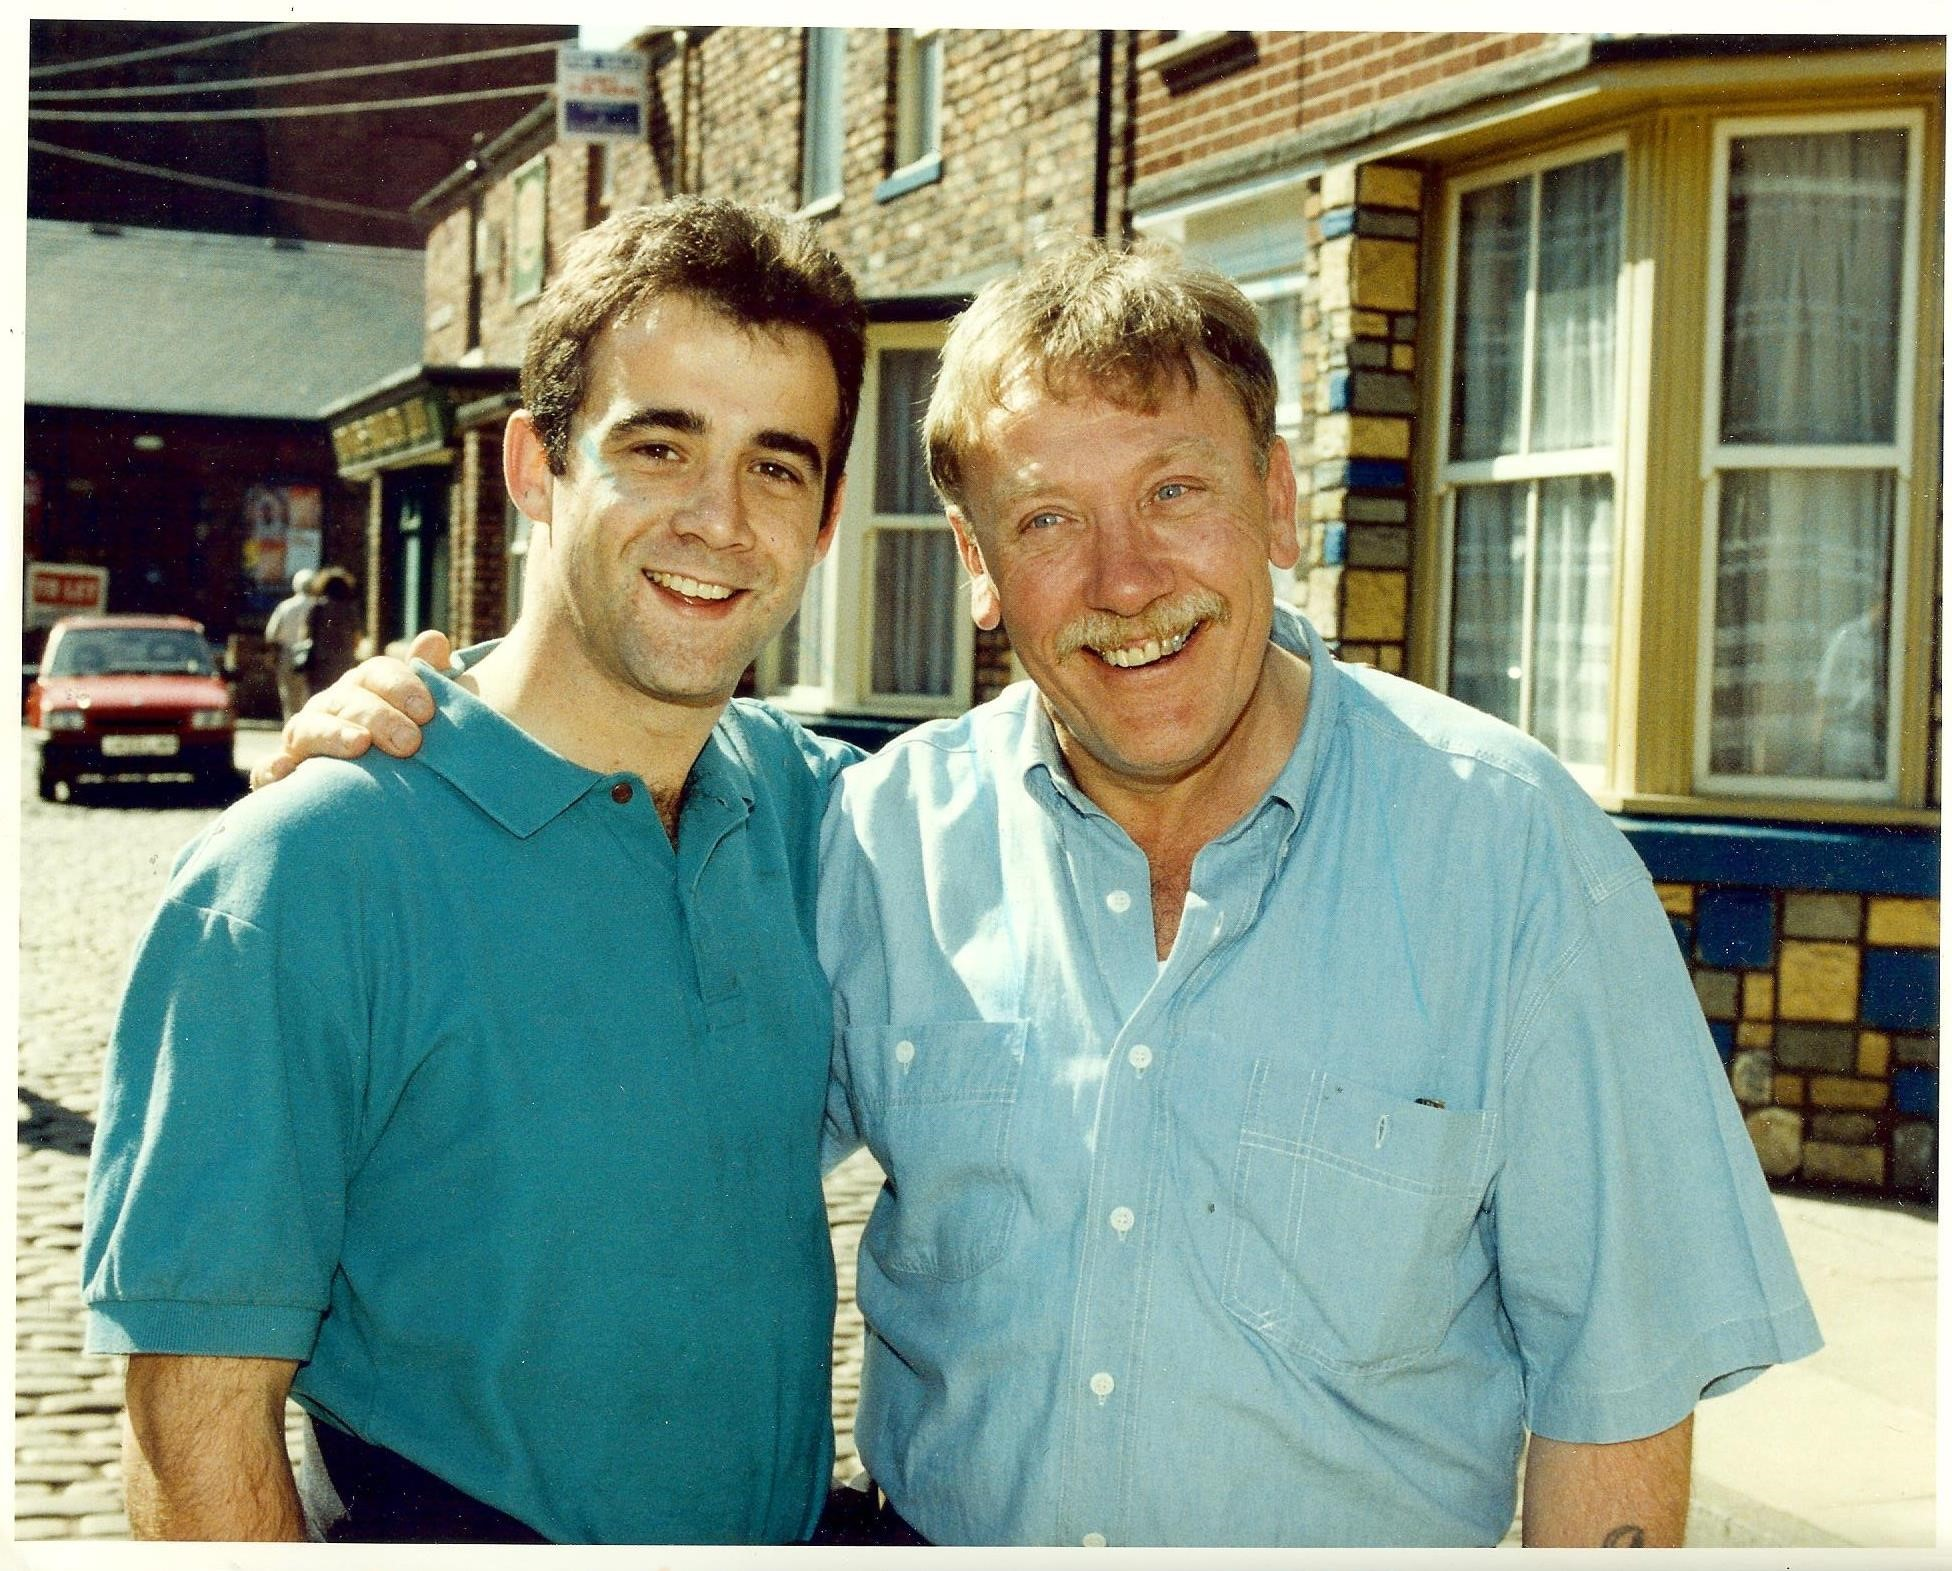 Peter Armitage, right, with his on-screen son Michael Le Vell